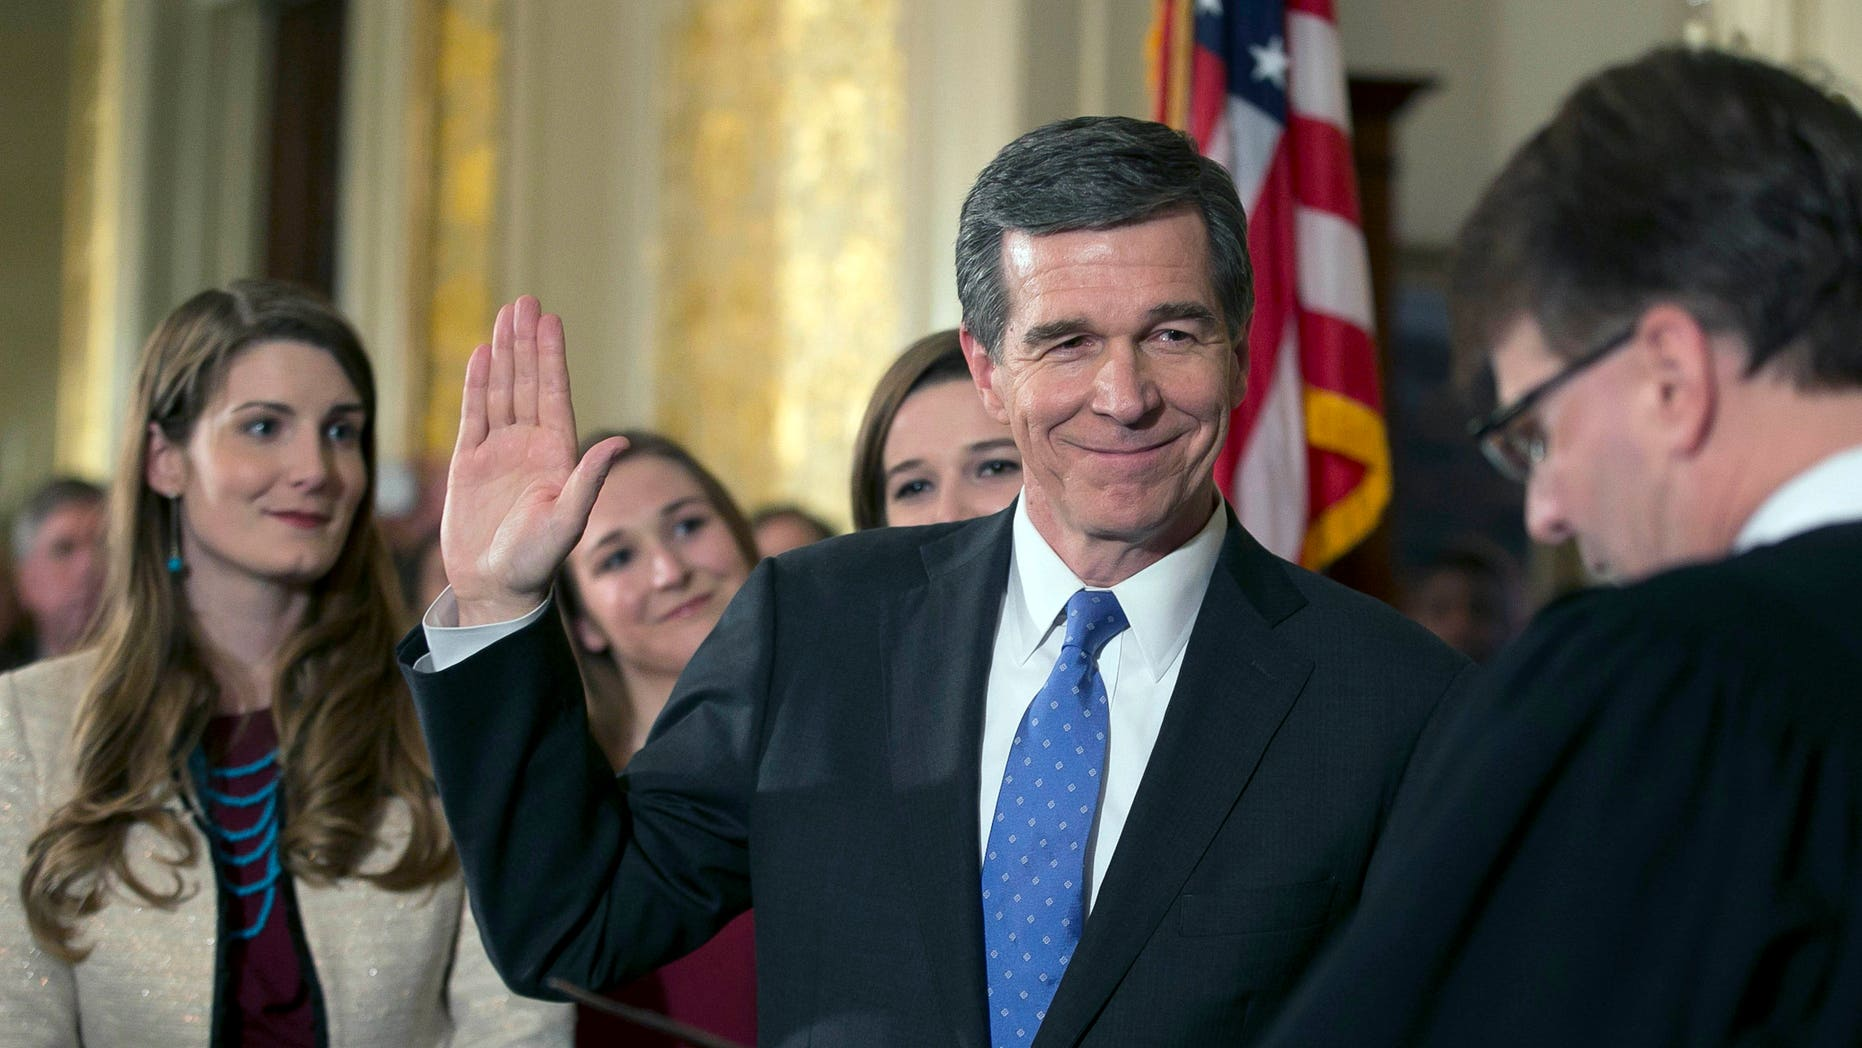 Roy Cooper is sworn in as the governor of North Carolina